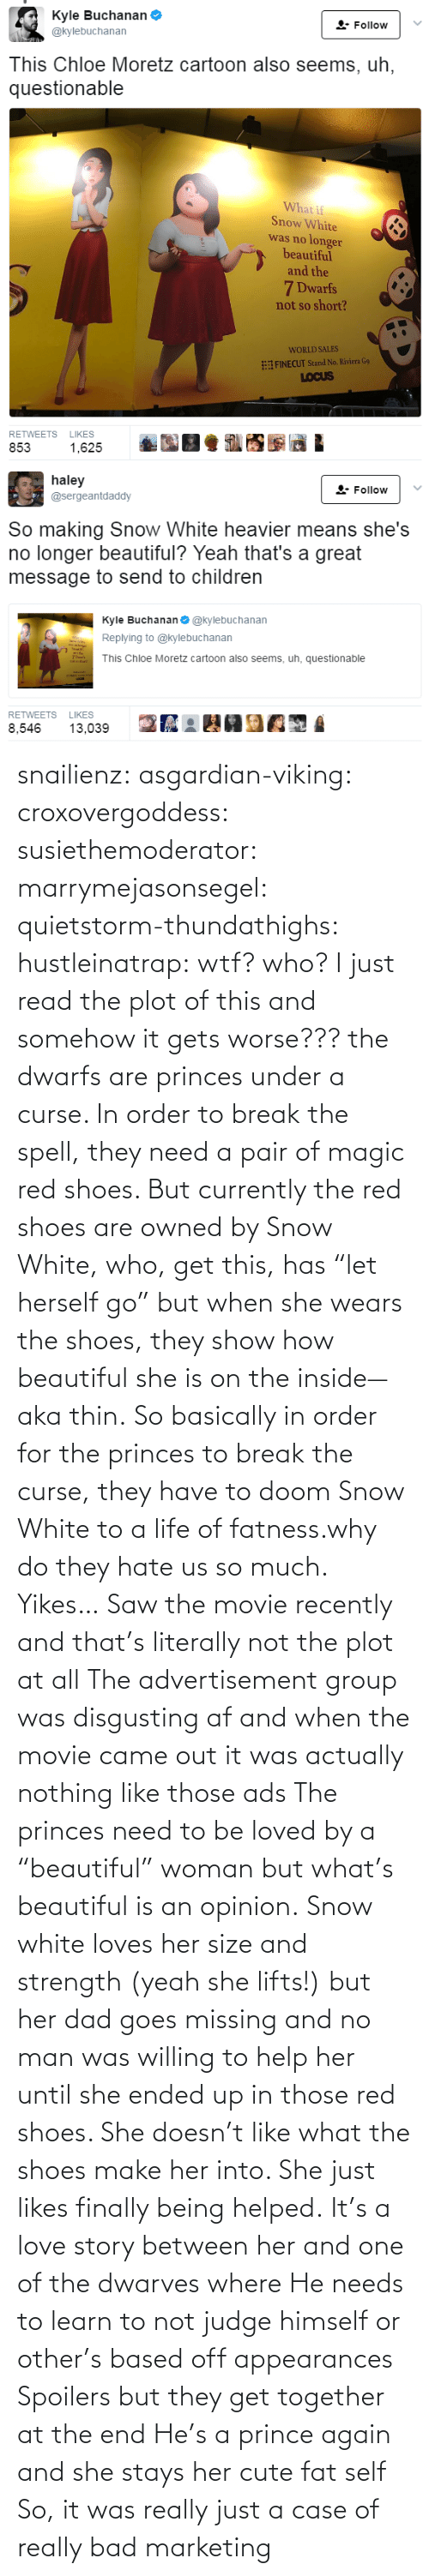 """Af, Bad, and Beautiful: snailienz: asgardian-viking:  croxovergoddess:  susiethemoderator:  marrymejasonsegel:   quietstorm-thundathighs:  hustleinatrap: wtf?  who?   I just read the plot of this and somehow it gets worse??? the dwarfs are princes under a curse. In order to break the spell, they need a pair of magic red shoes. But currently the red shoes are owned by Snow White, who, get this, has """"let herself go"""" but when she wears the shoes, they show how beautiful she is on the inside—aka thin. So basically in order for the princes to break the curse, they have to doom Snow White to a life of fatness.why do they hate us so much.   Yikes…    Saw the movie recently and that's literally not the plot at all The advertisement group was disgusting af and when the movie came out it was actually nothing like those ads The princes need to be loved by a """"beautiful"""" woman but what's beautiful is an opinion. Snow white loves her size and strength (yeah she lifts!) but her dad goes missing and no man was willing to help her until she ended up in those red shoes. She doesn't like what the shoes make her into. She just likes finally being helped. It's a love story between her and one of the dwarves where He needs to learn to not judge himself or other's based off appearances  Spoilers but they get together at the end He's a prince again and she stays her cute fat self  So, it was really just a case of really bad marketing"""